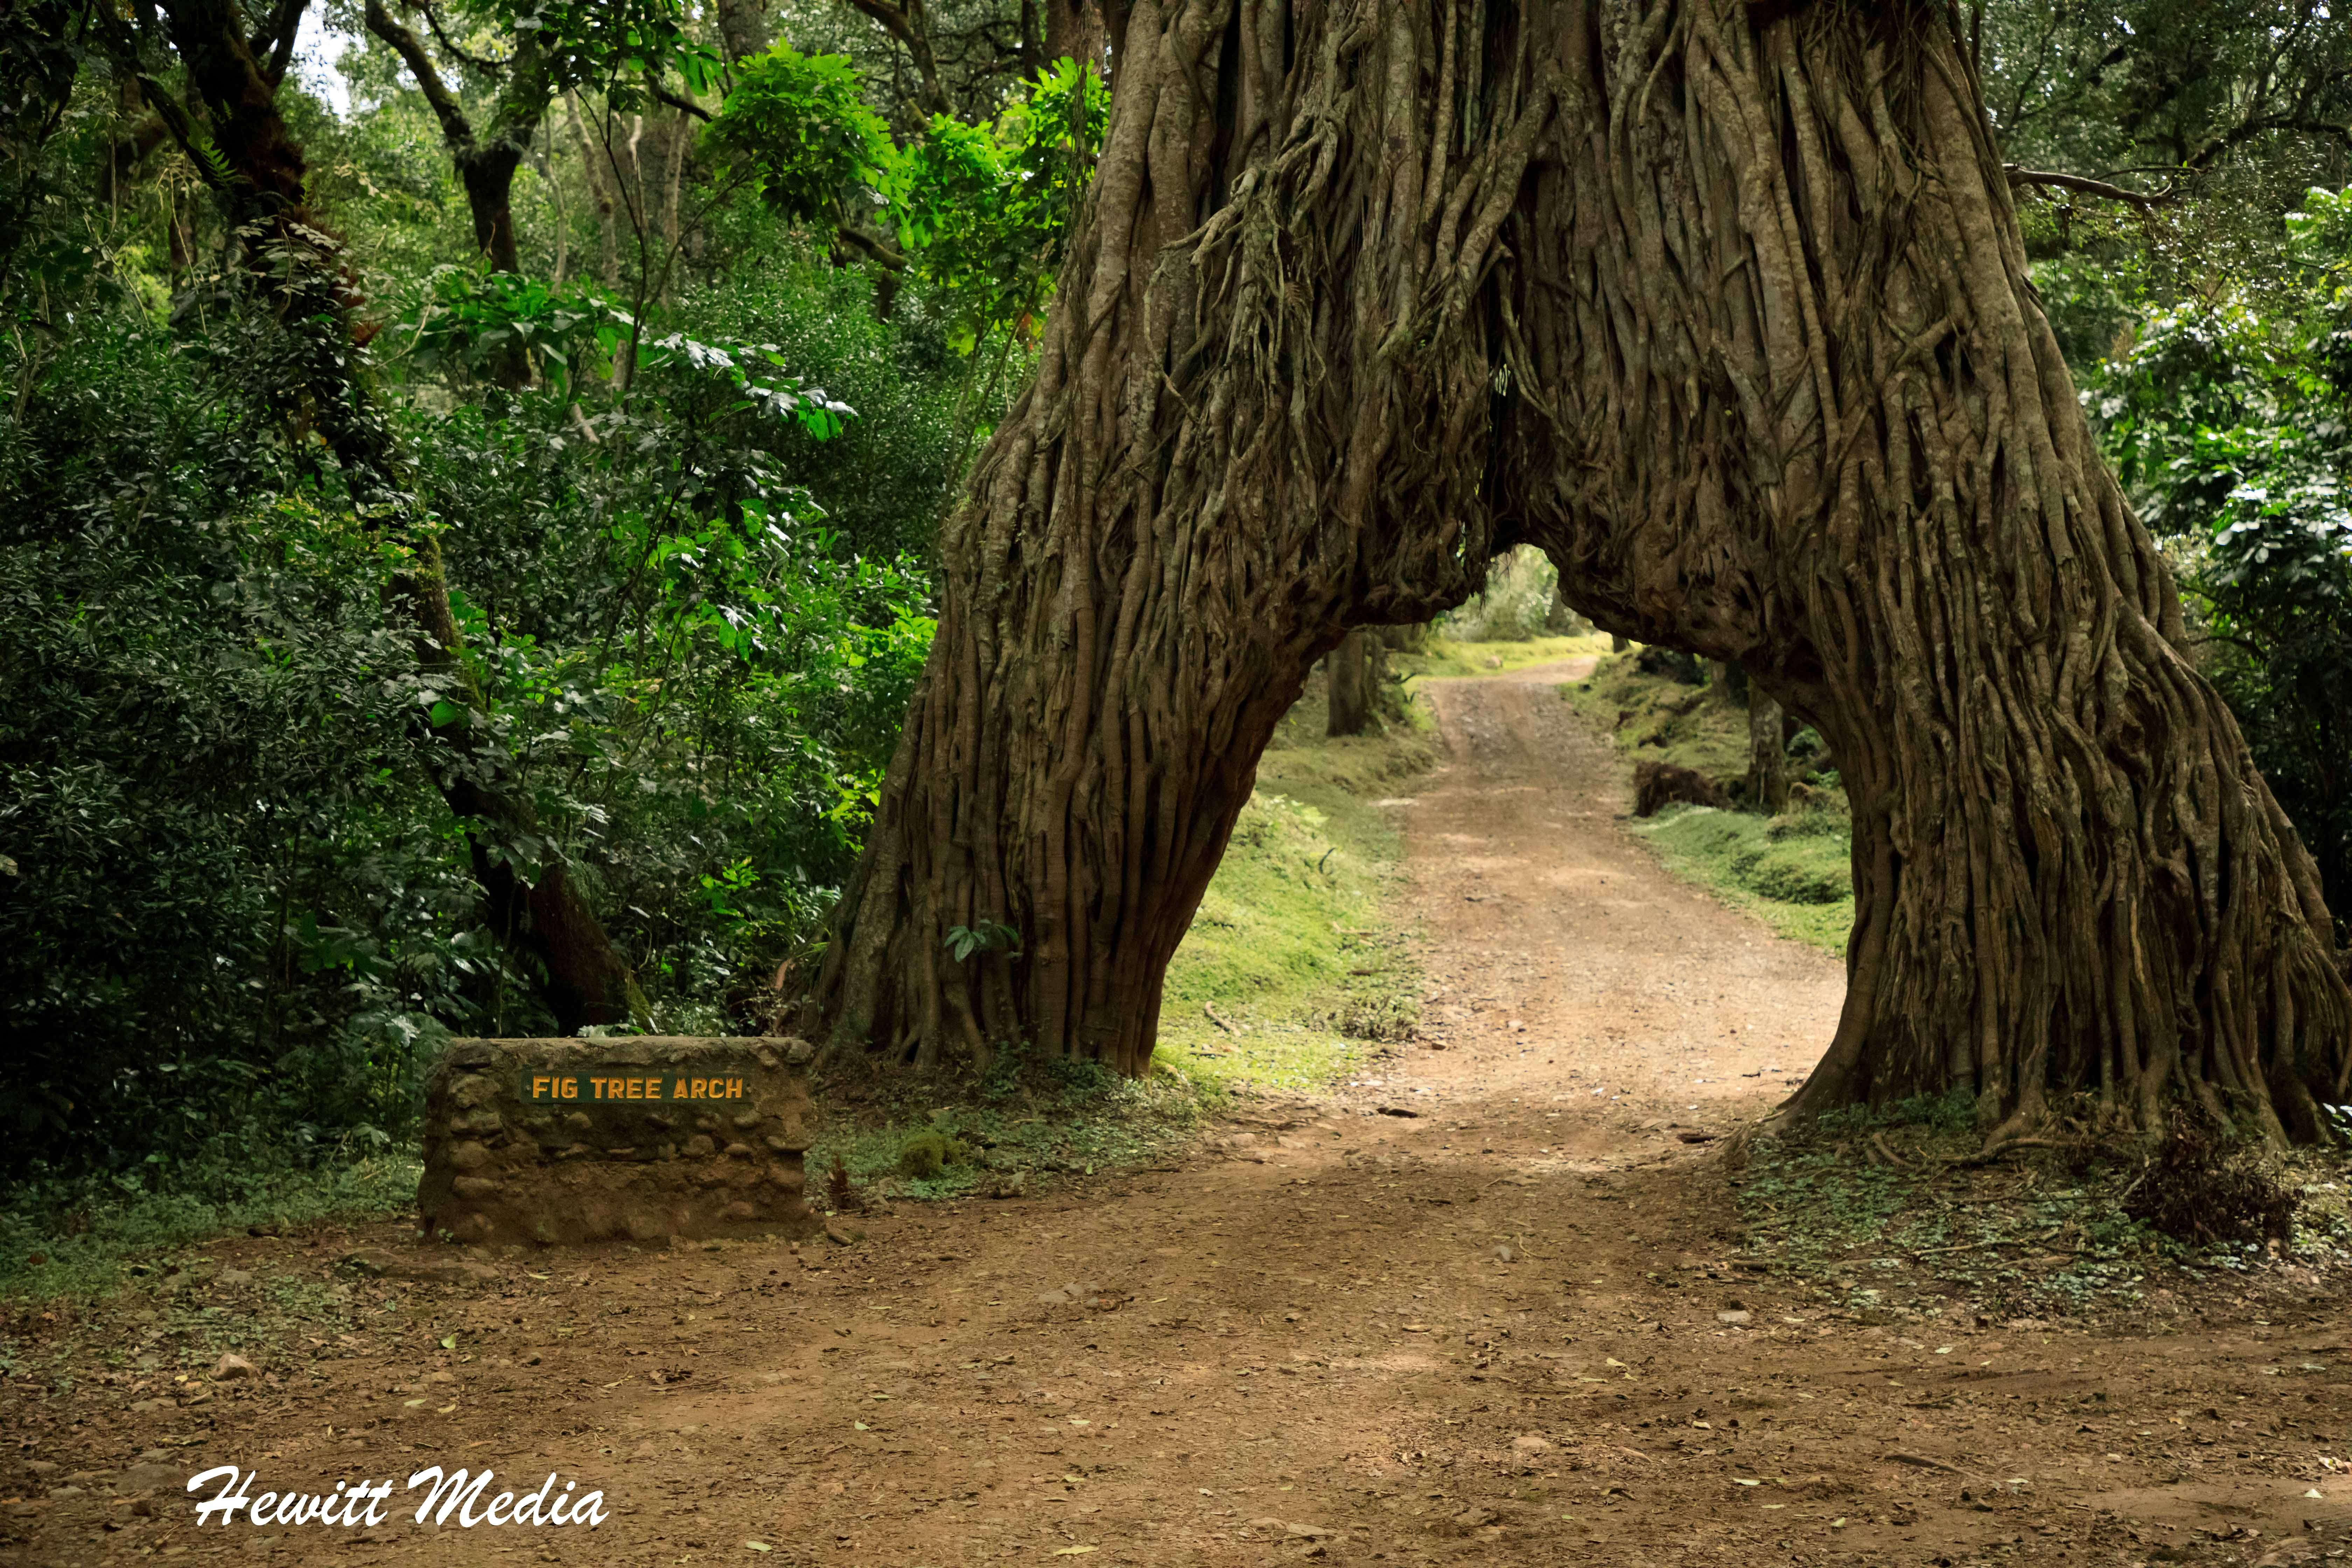 The Fig Tree Arch in Arusha National Park